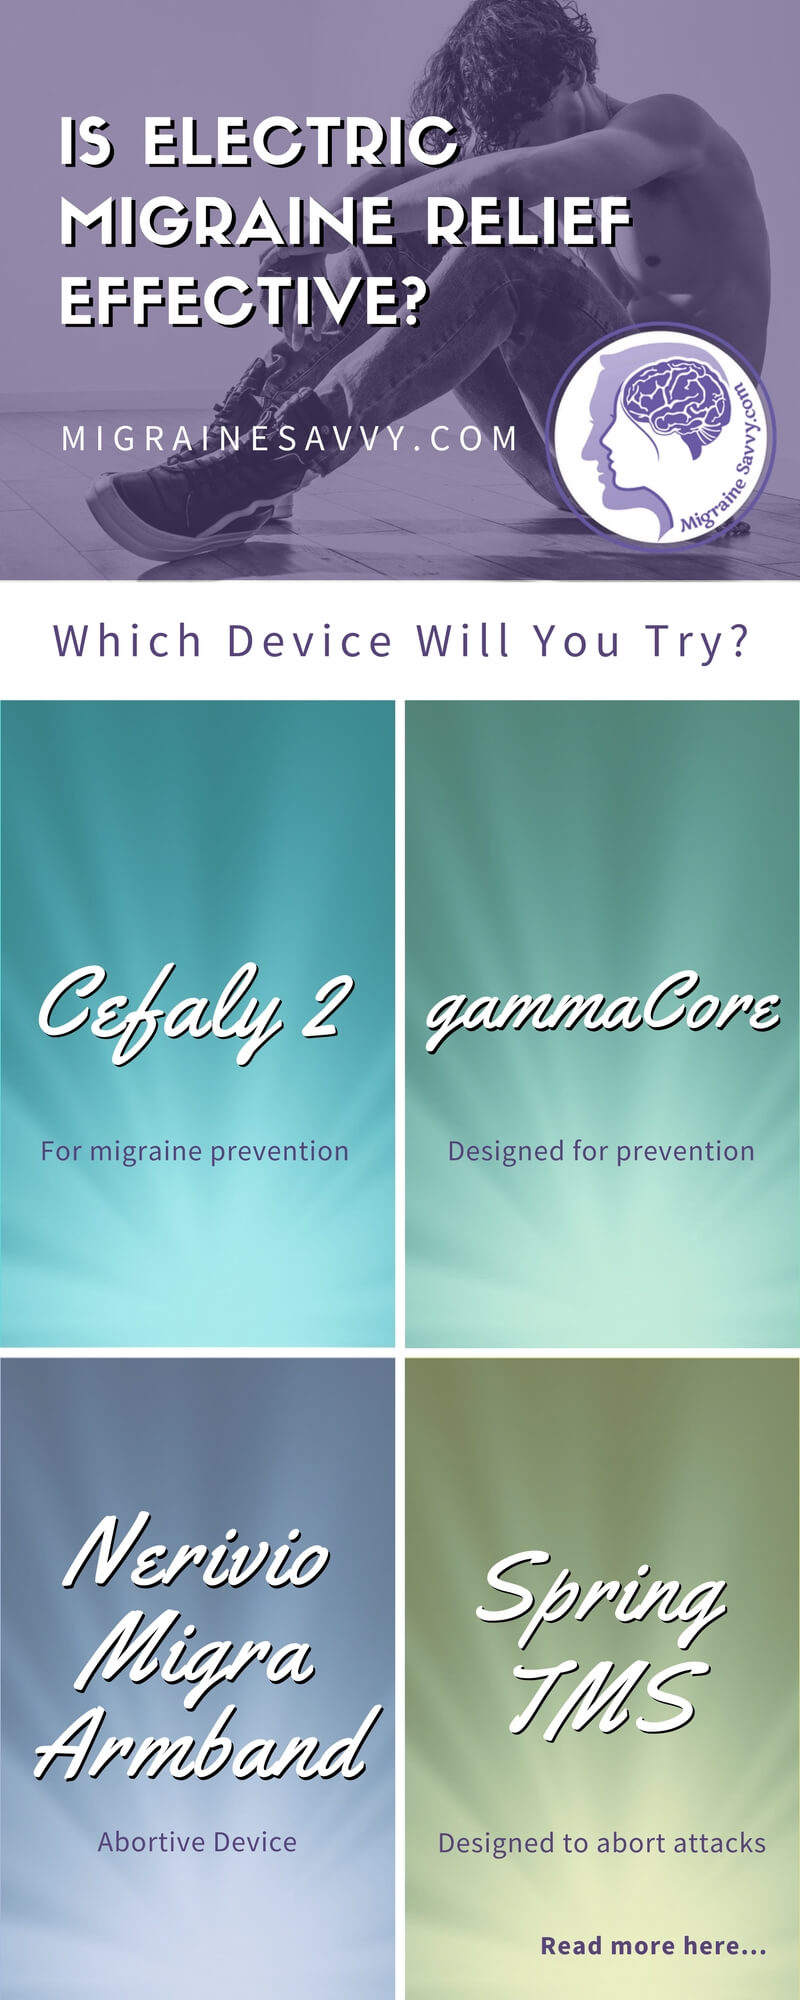 Cefaly, gammaCore, Spring TMS, Biofeedback and the new kid on the block for electric migraine relief. @migrainesavvy #migrainerelief #stopmigraines #migrainesareafulltimejob